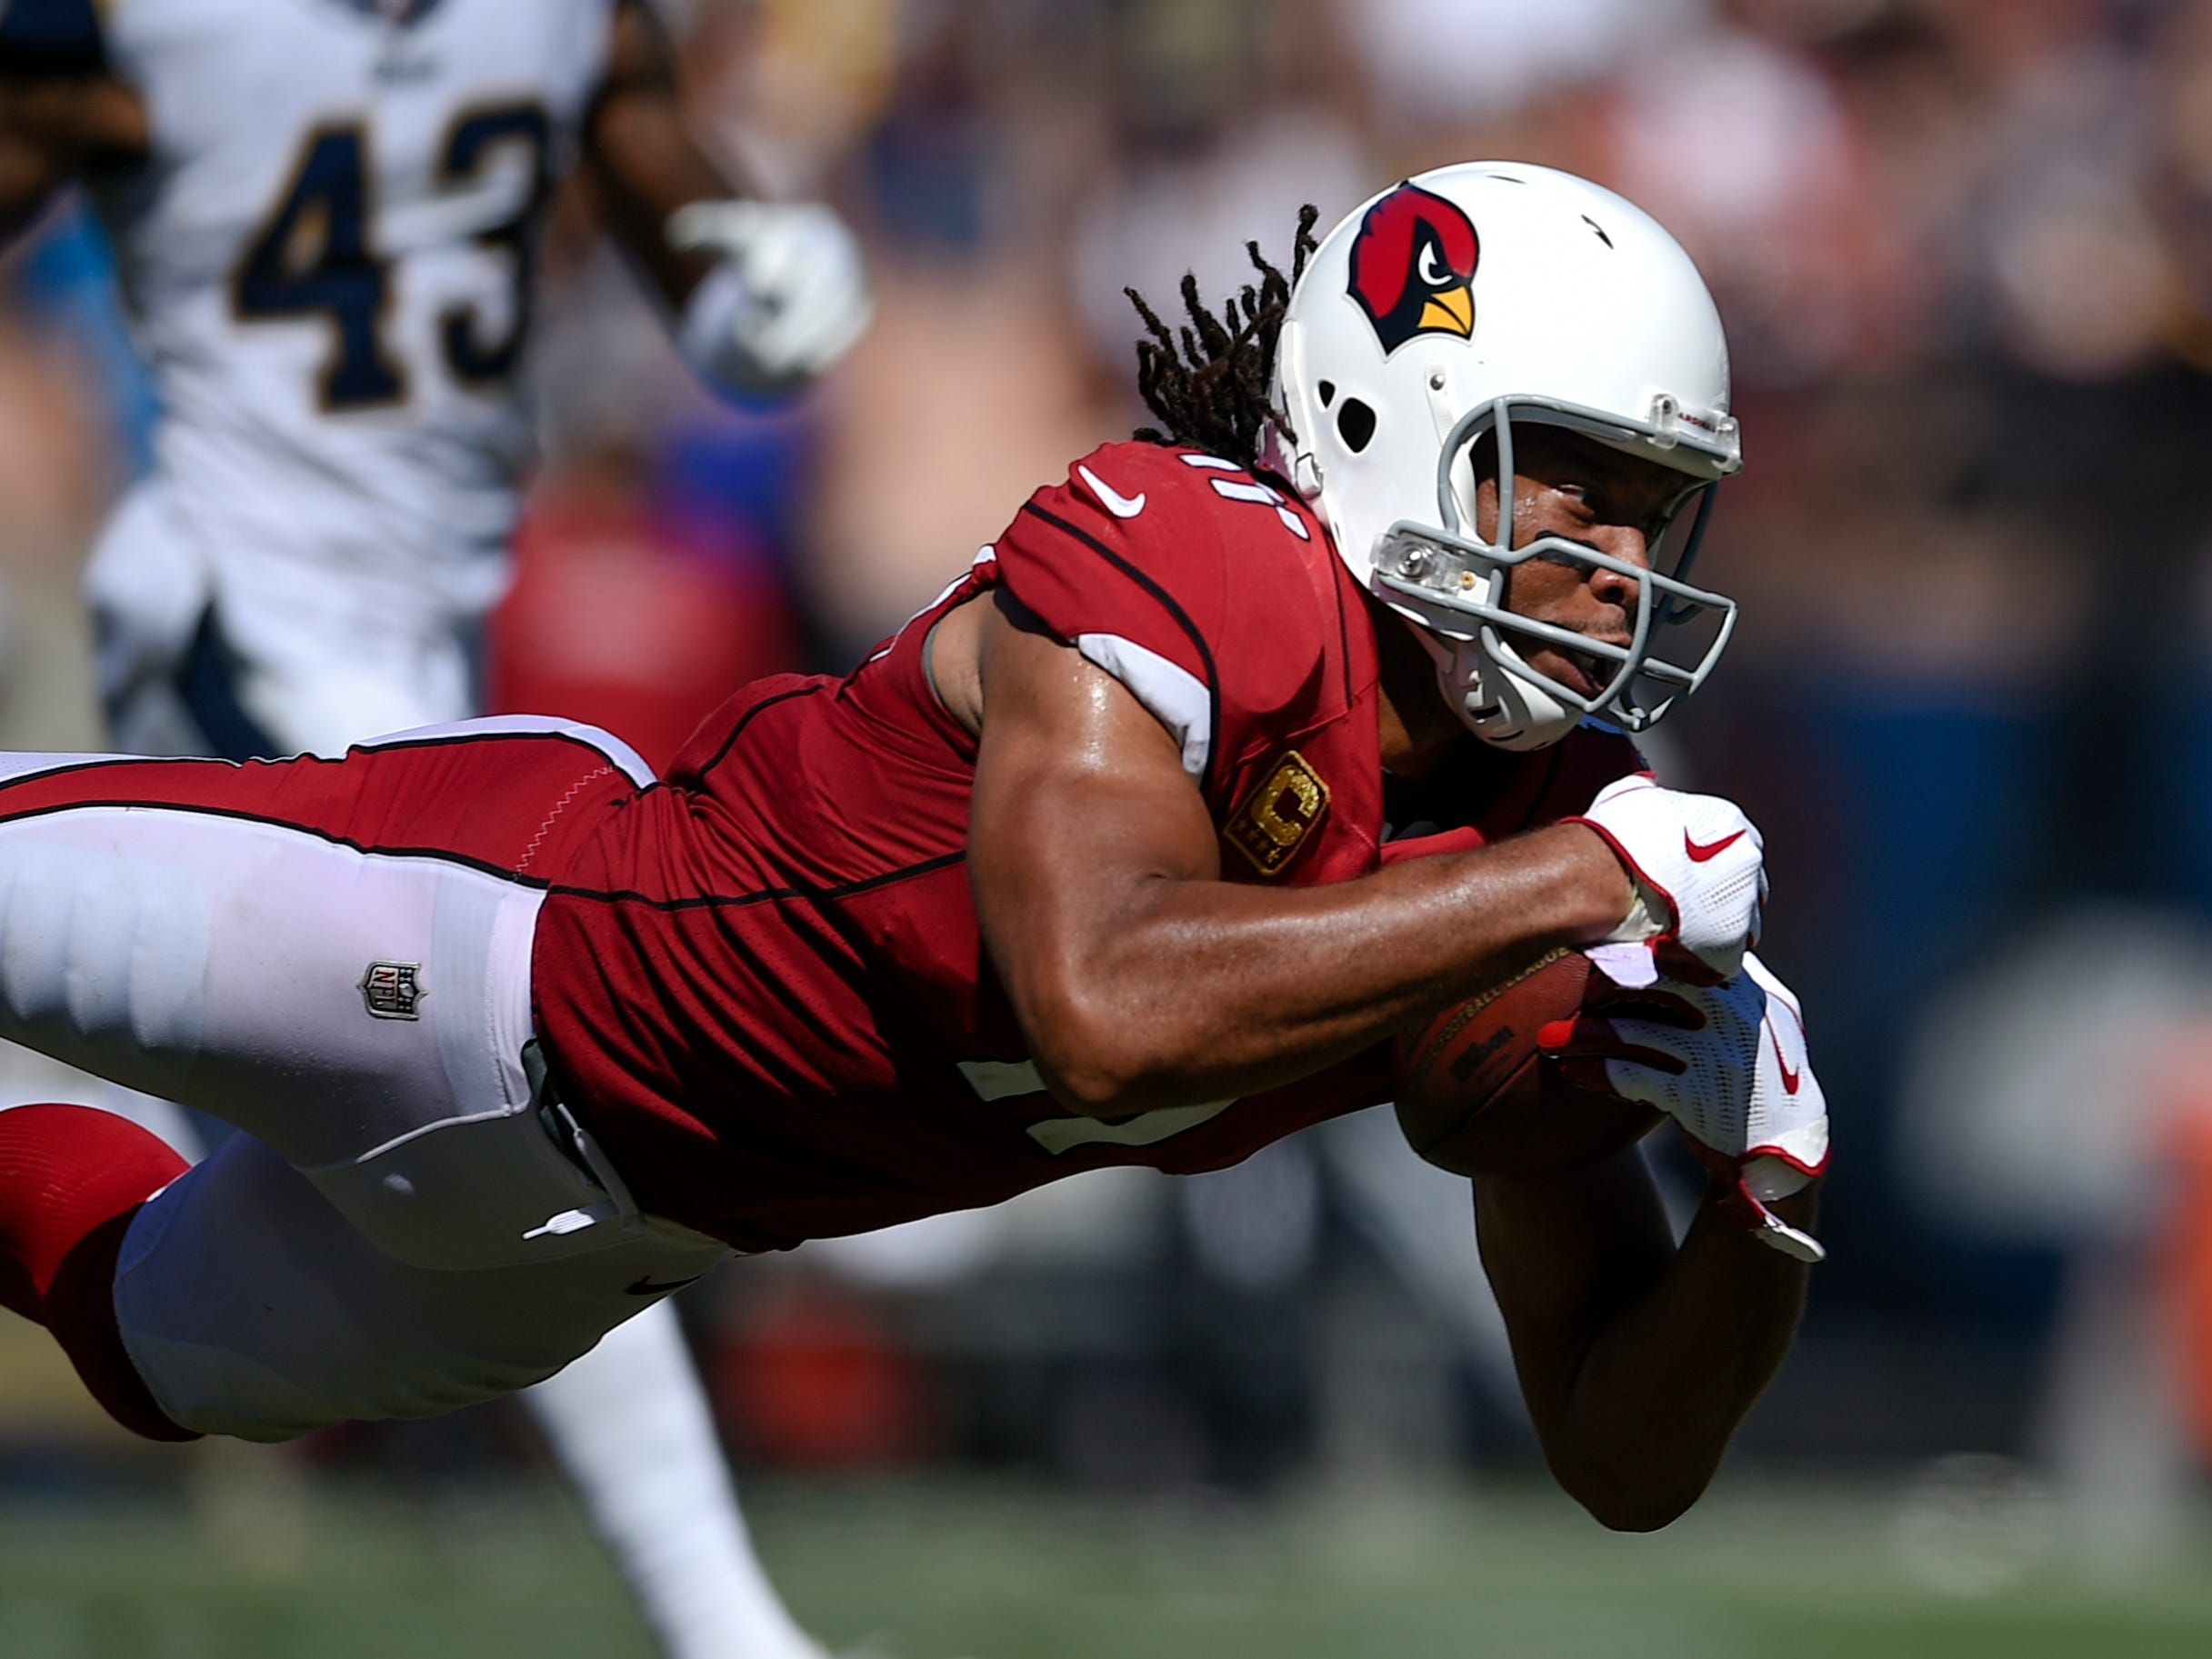 Sep 16, 2018; Los Angeles, CA, USA; Arizona Cardinals wide receiver Larry Fitzgerald (11) catches a pass against the Los Angeles Rams during the second half at Los Angeles Memorial Coliseum. Mandatory Credit: Kelvin Kuo-USA TODAY Sports